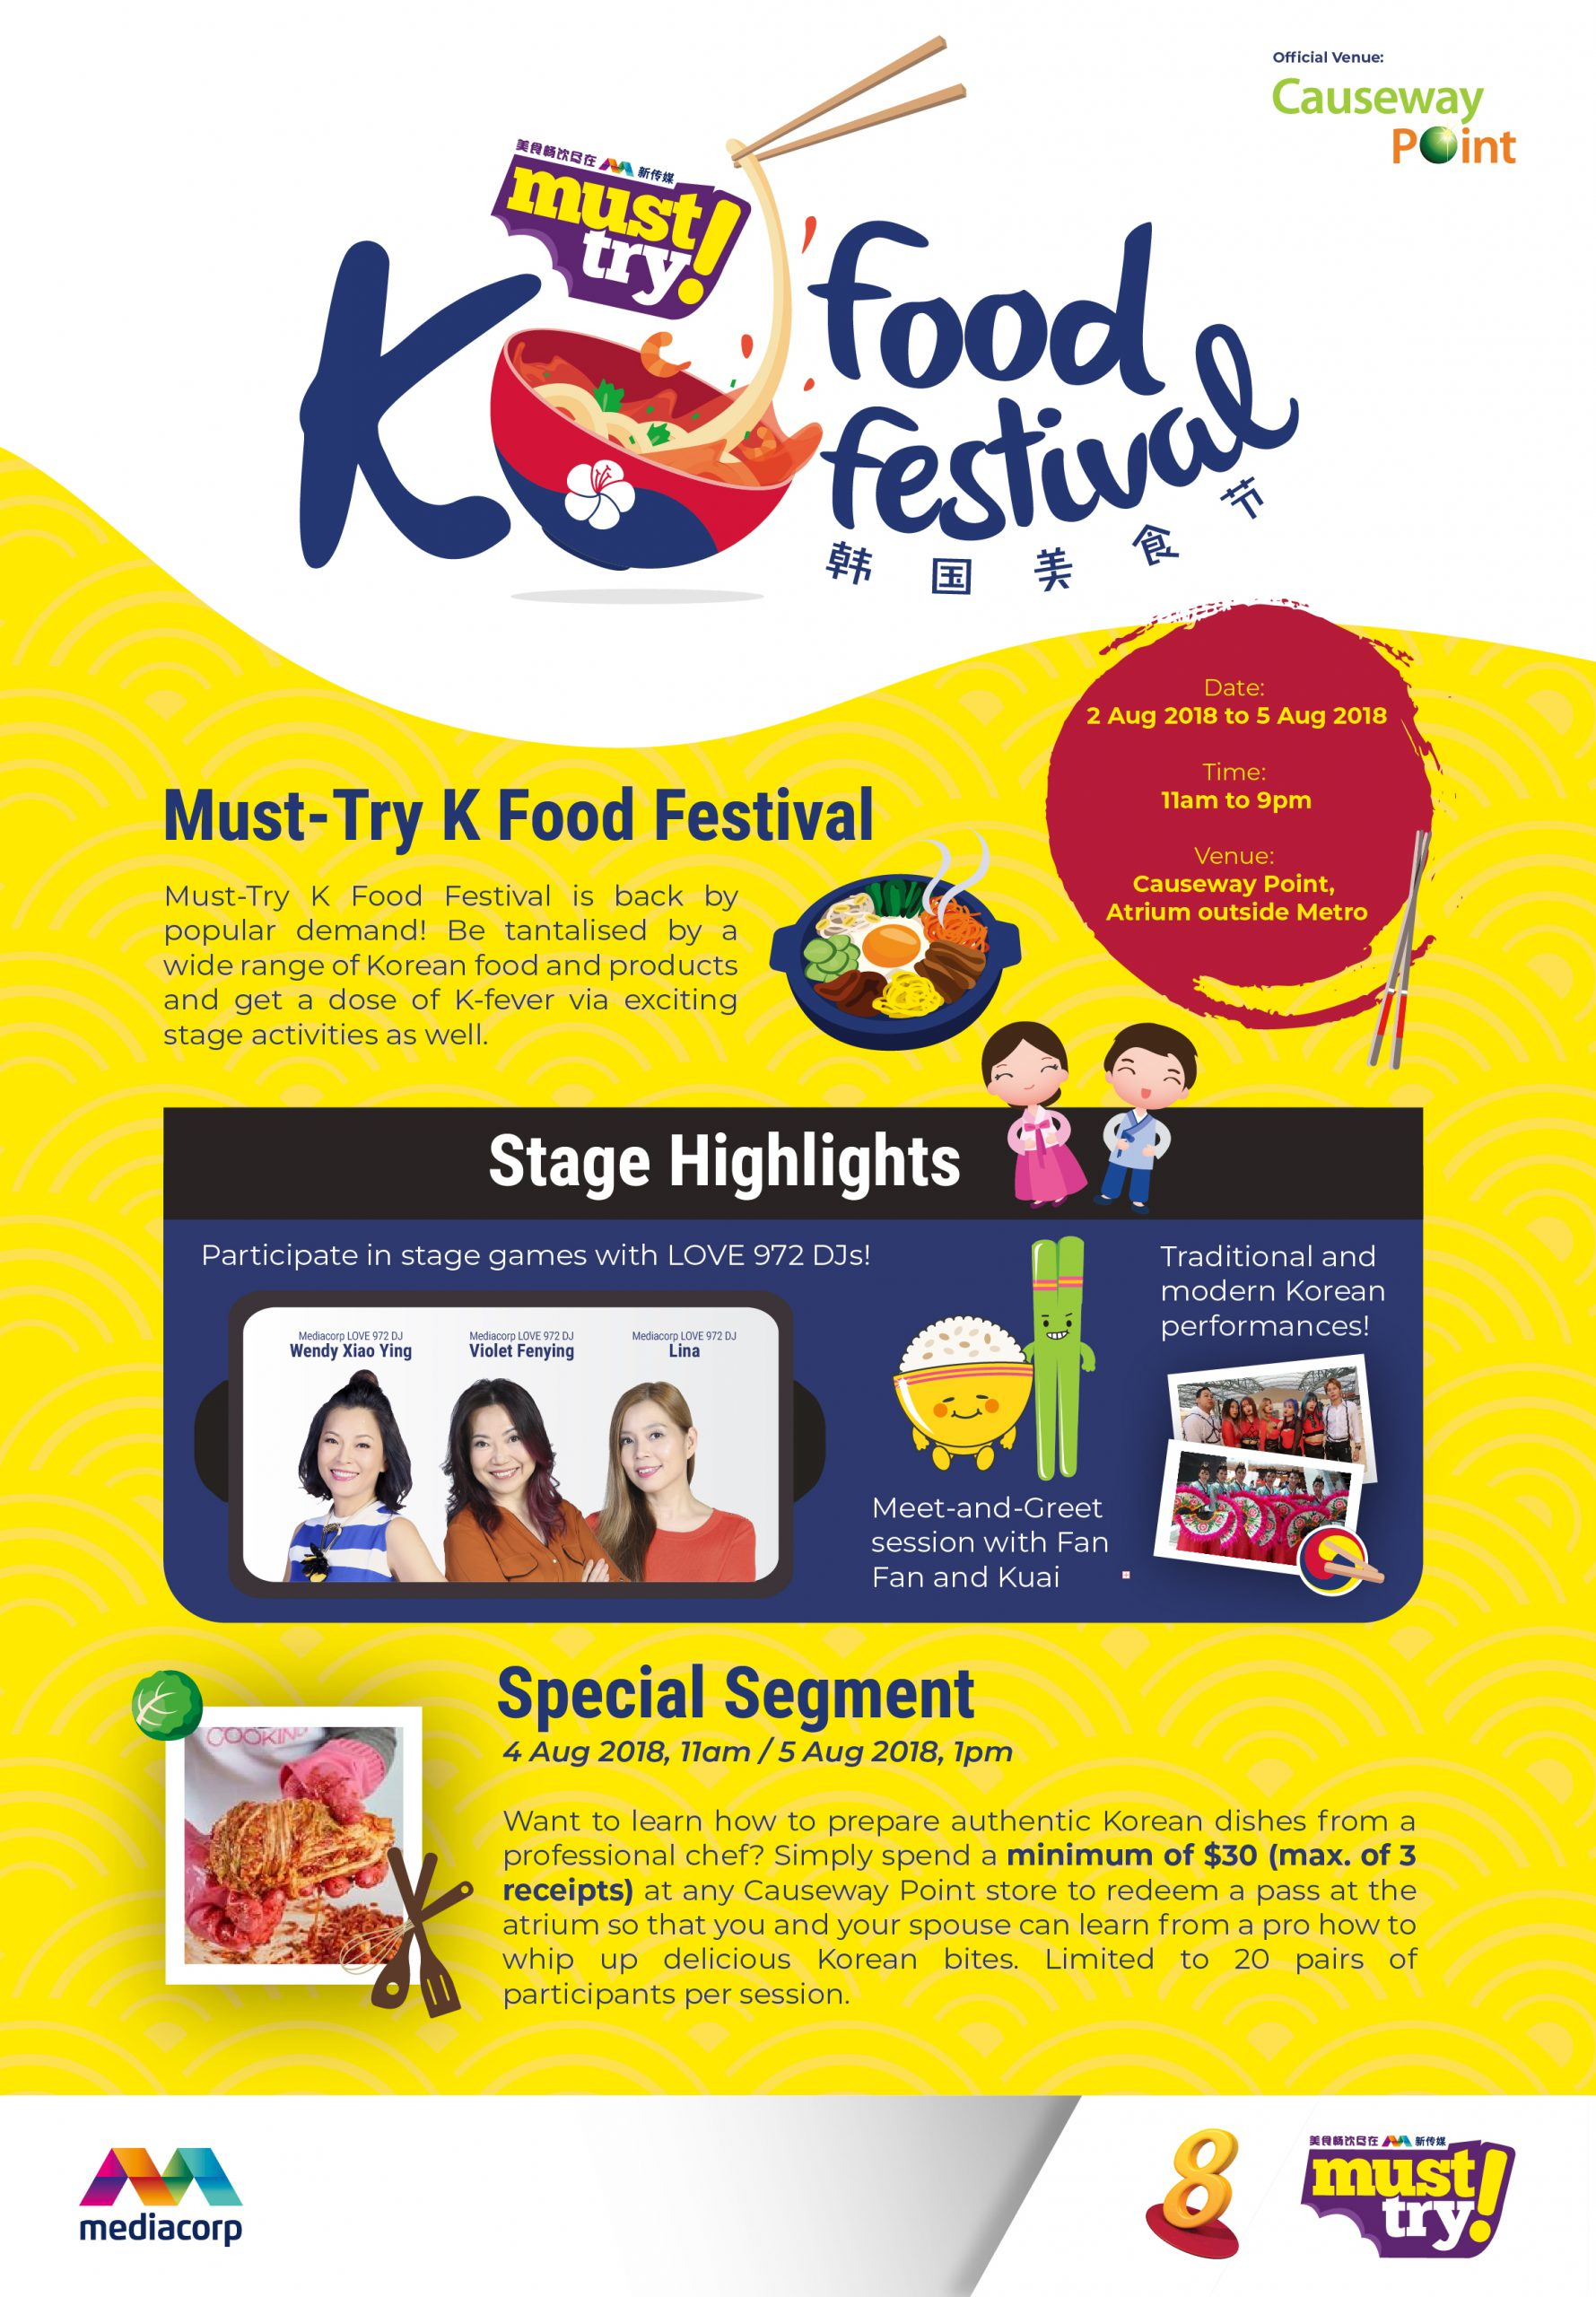 Must-Try K Food Festival Artwork